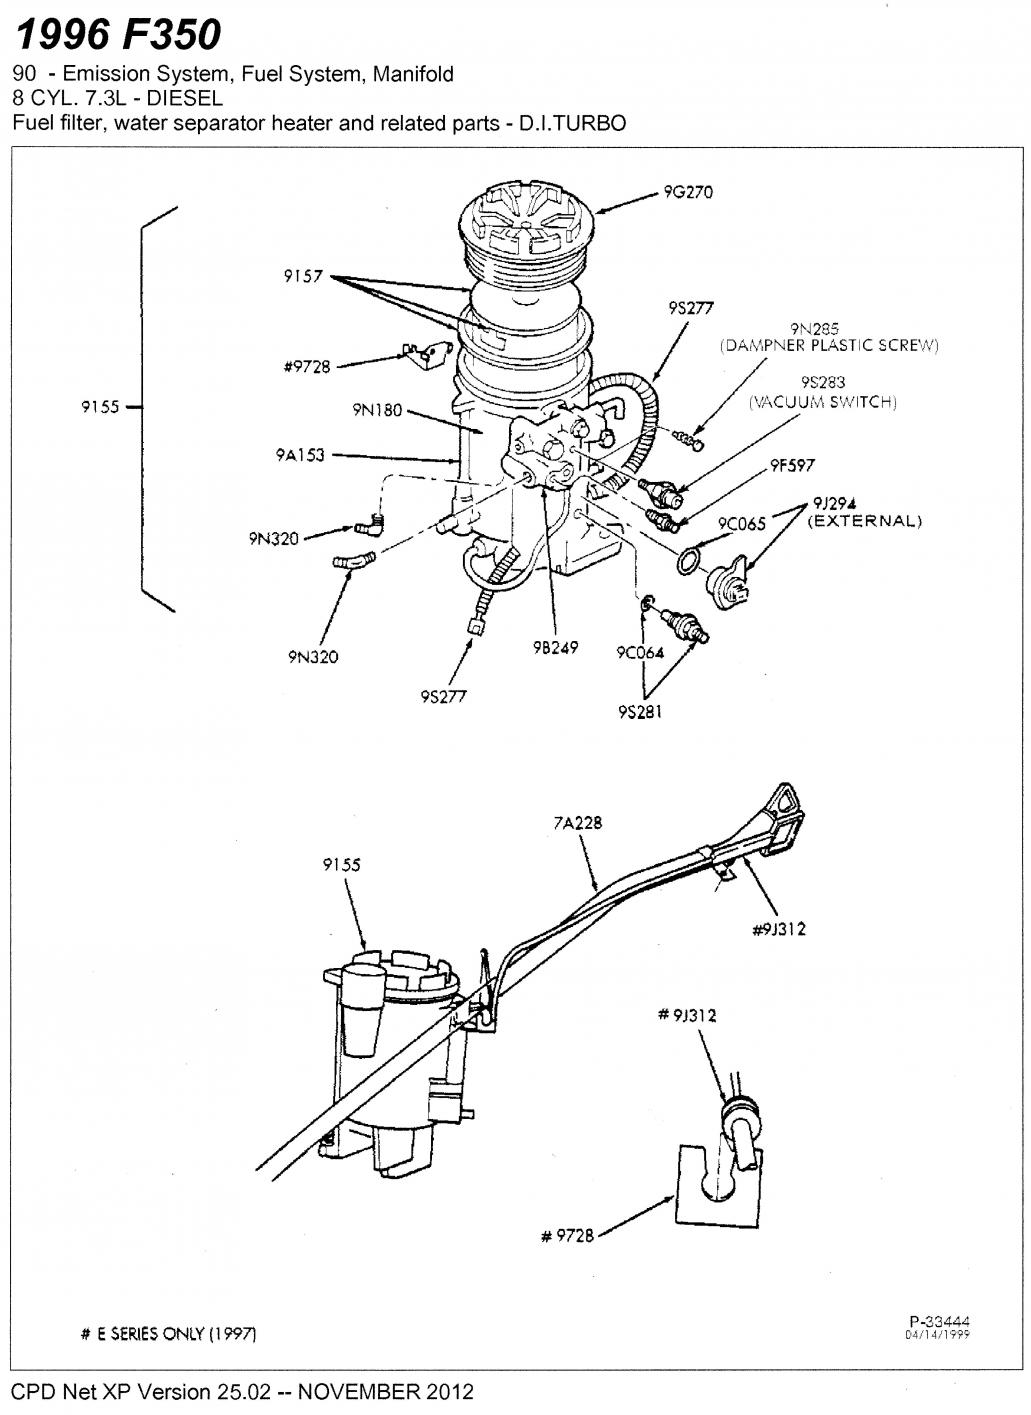 Ford 7 3 Diesel Fuel Line Diagram 2000 F350 1996 System Best Secret Wiring Hight Resolution Of 96 Glow Plug Relay Starter F